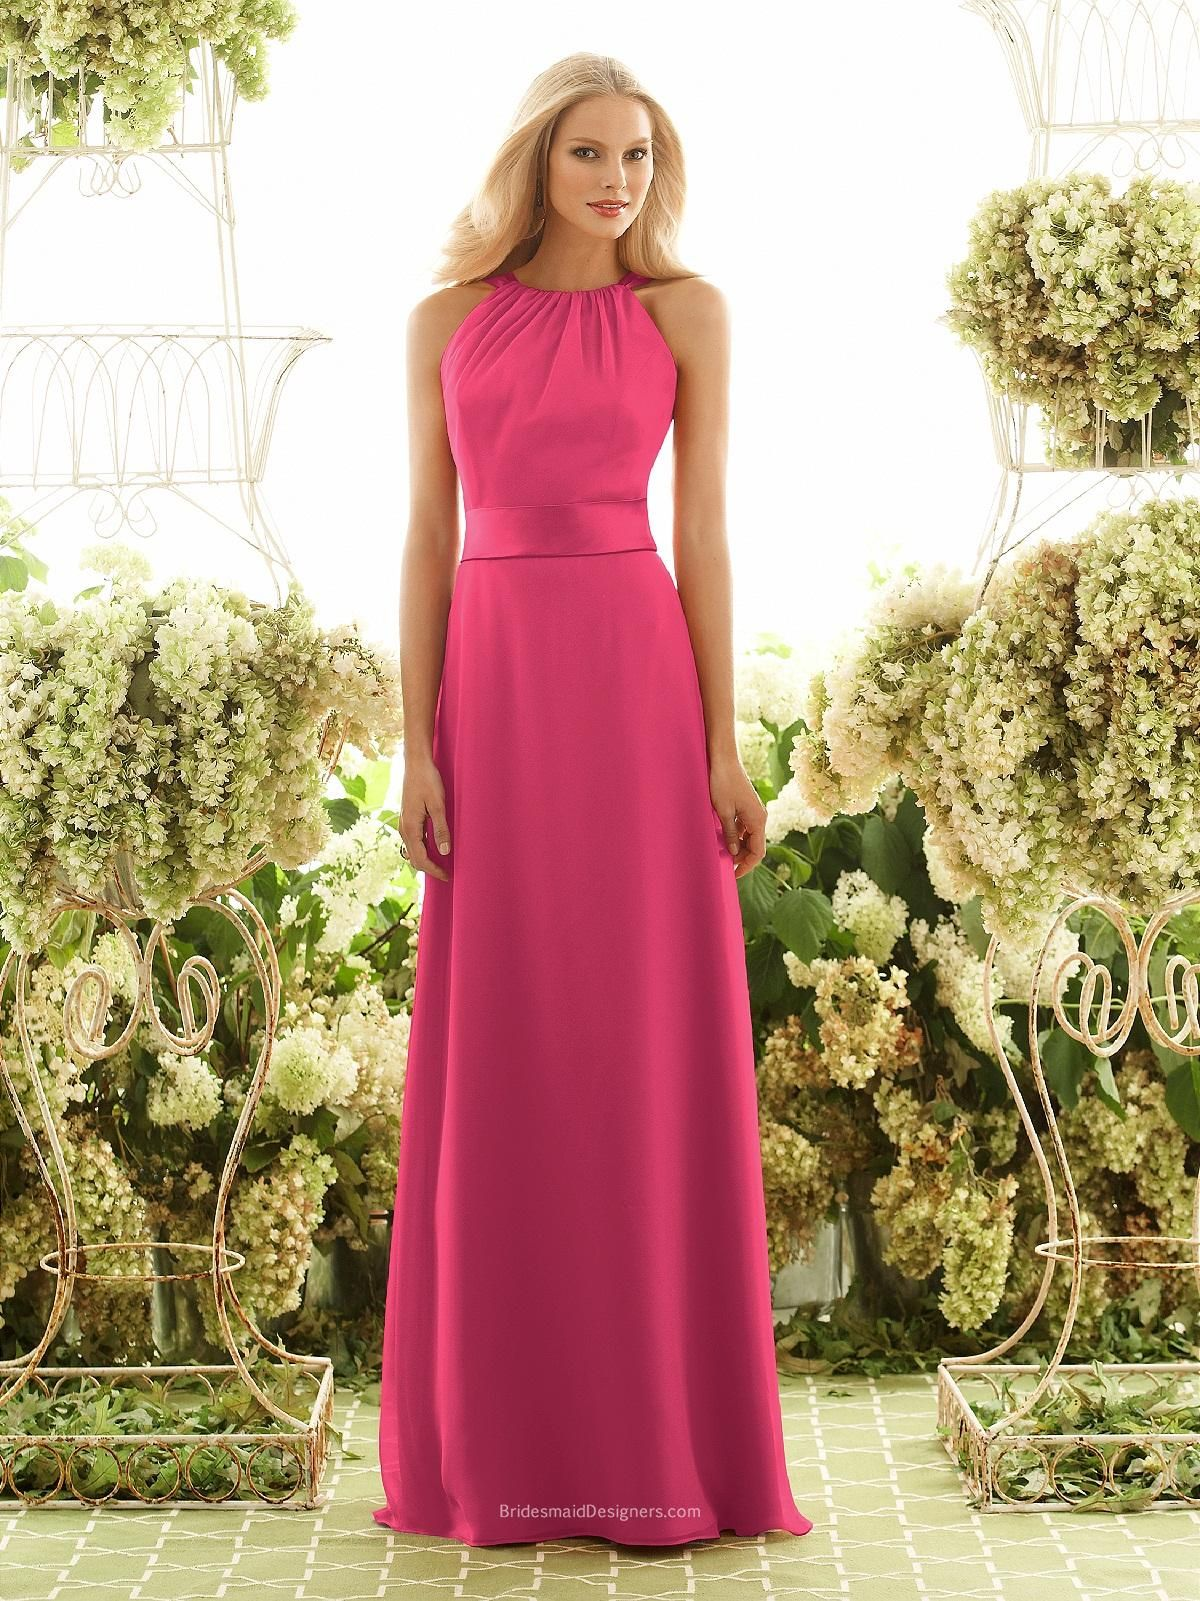 Stunning Fuschia Halter Sleeveless Long Chiffon Bridesmaid Dress With Satin Sash And Bow On Back